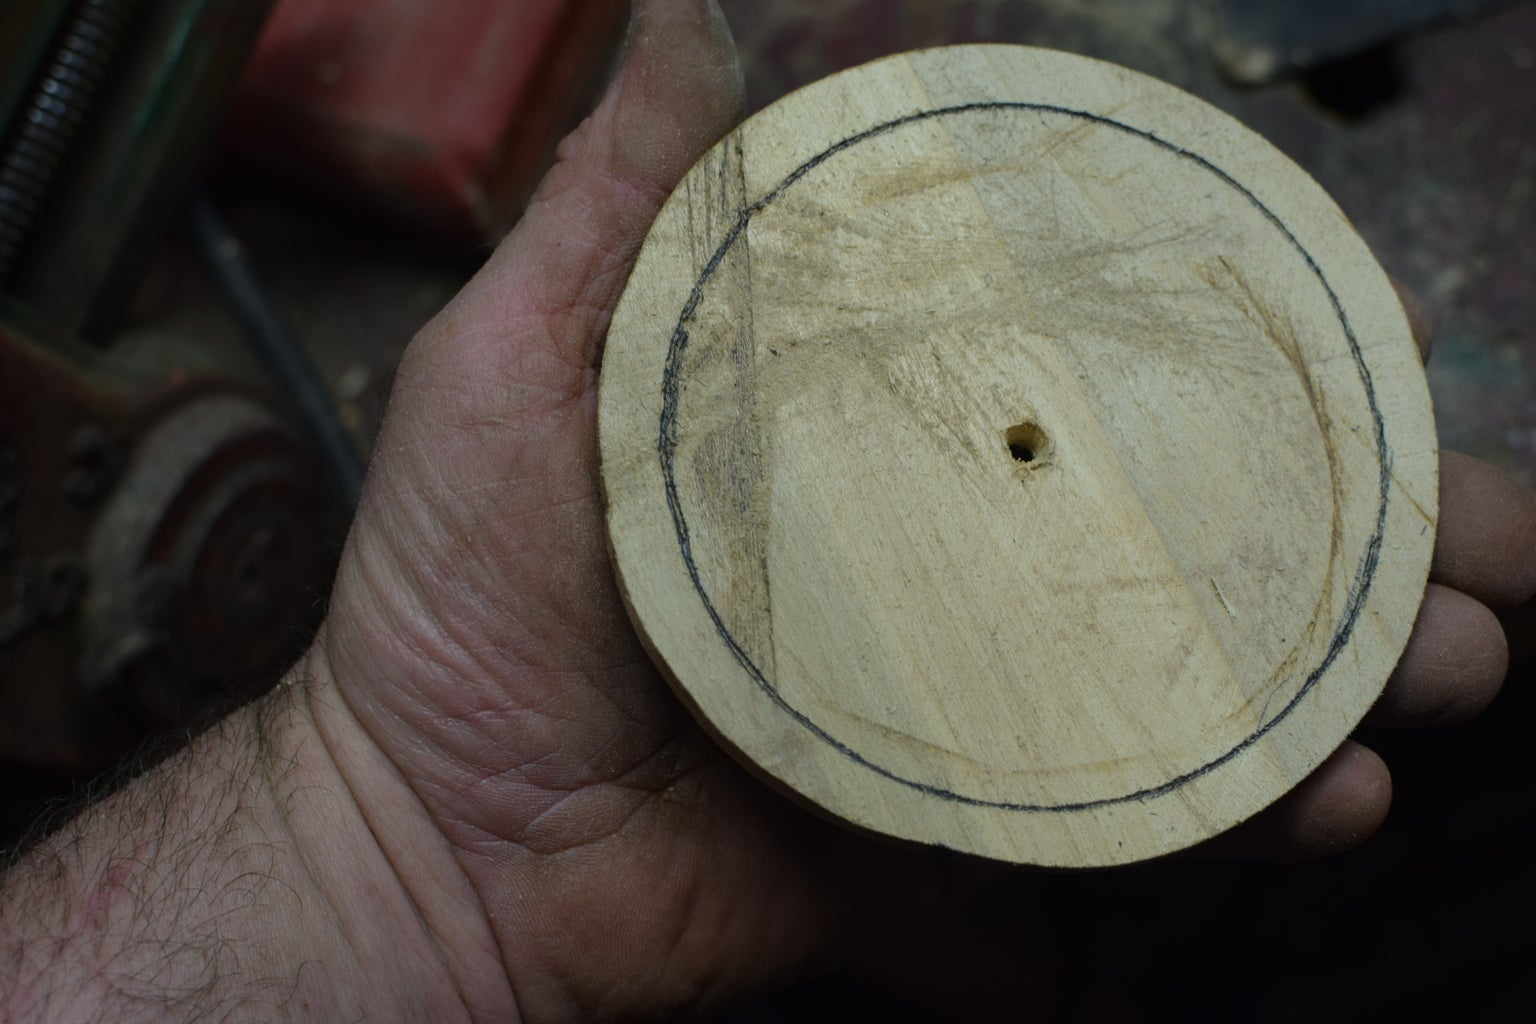 Scribe an Inside Circumference Line.